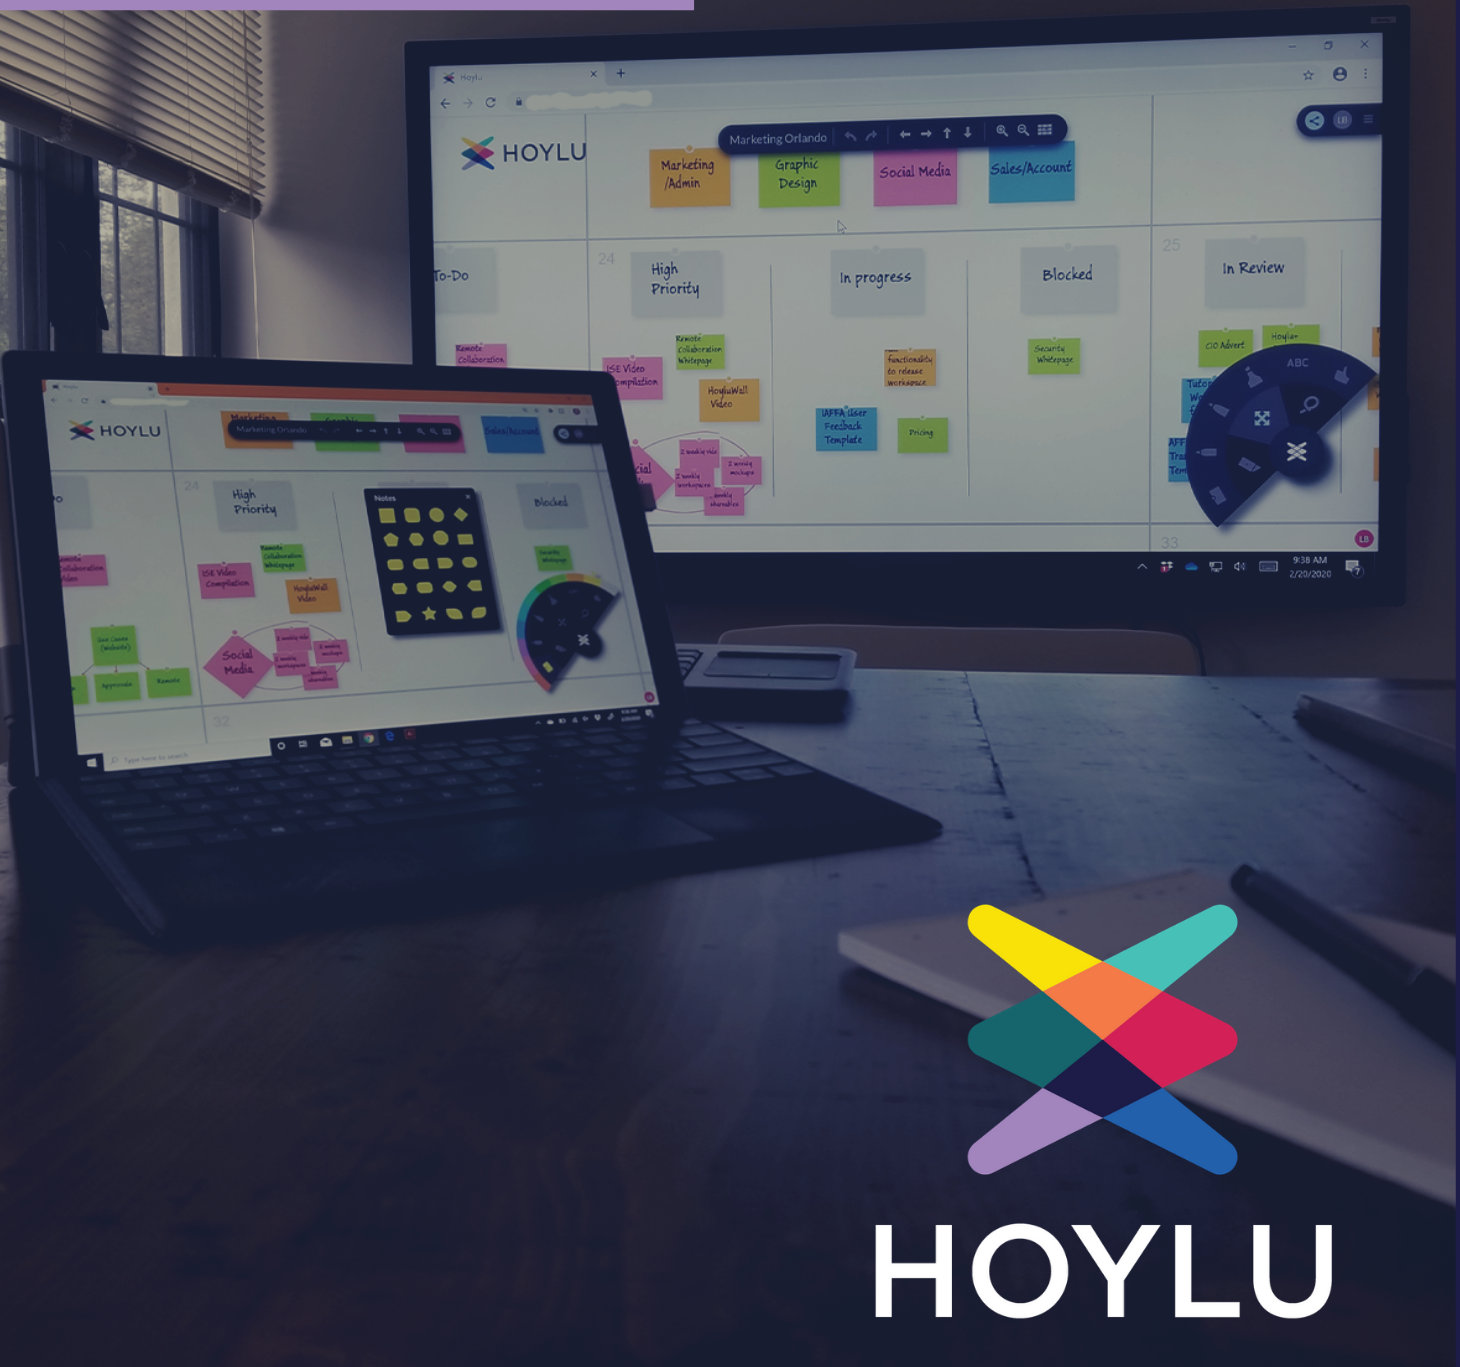 TIG & Hoylu offer extended free trial of remote collaboration software for commercial & education sectors